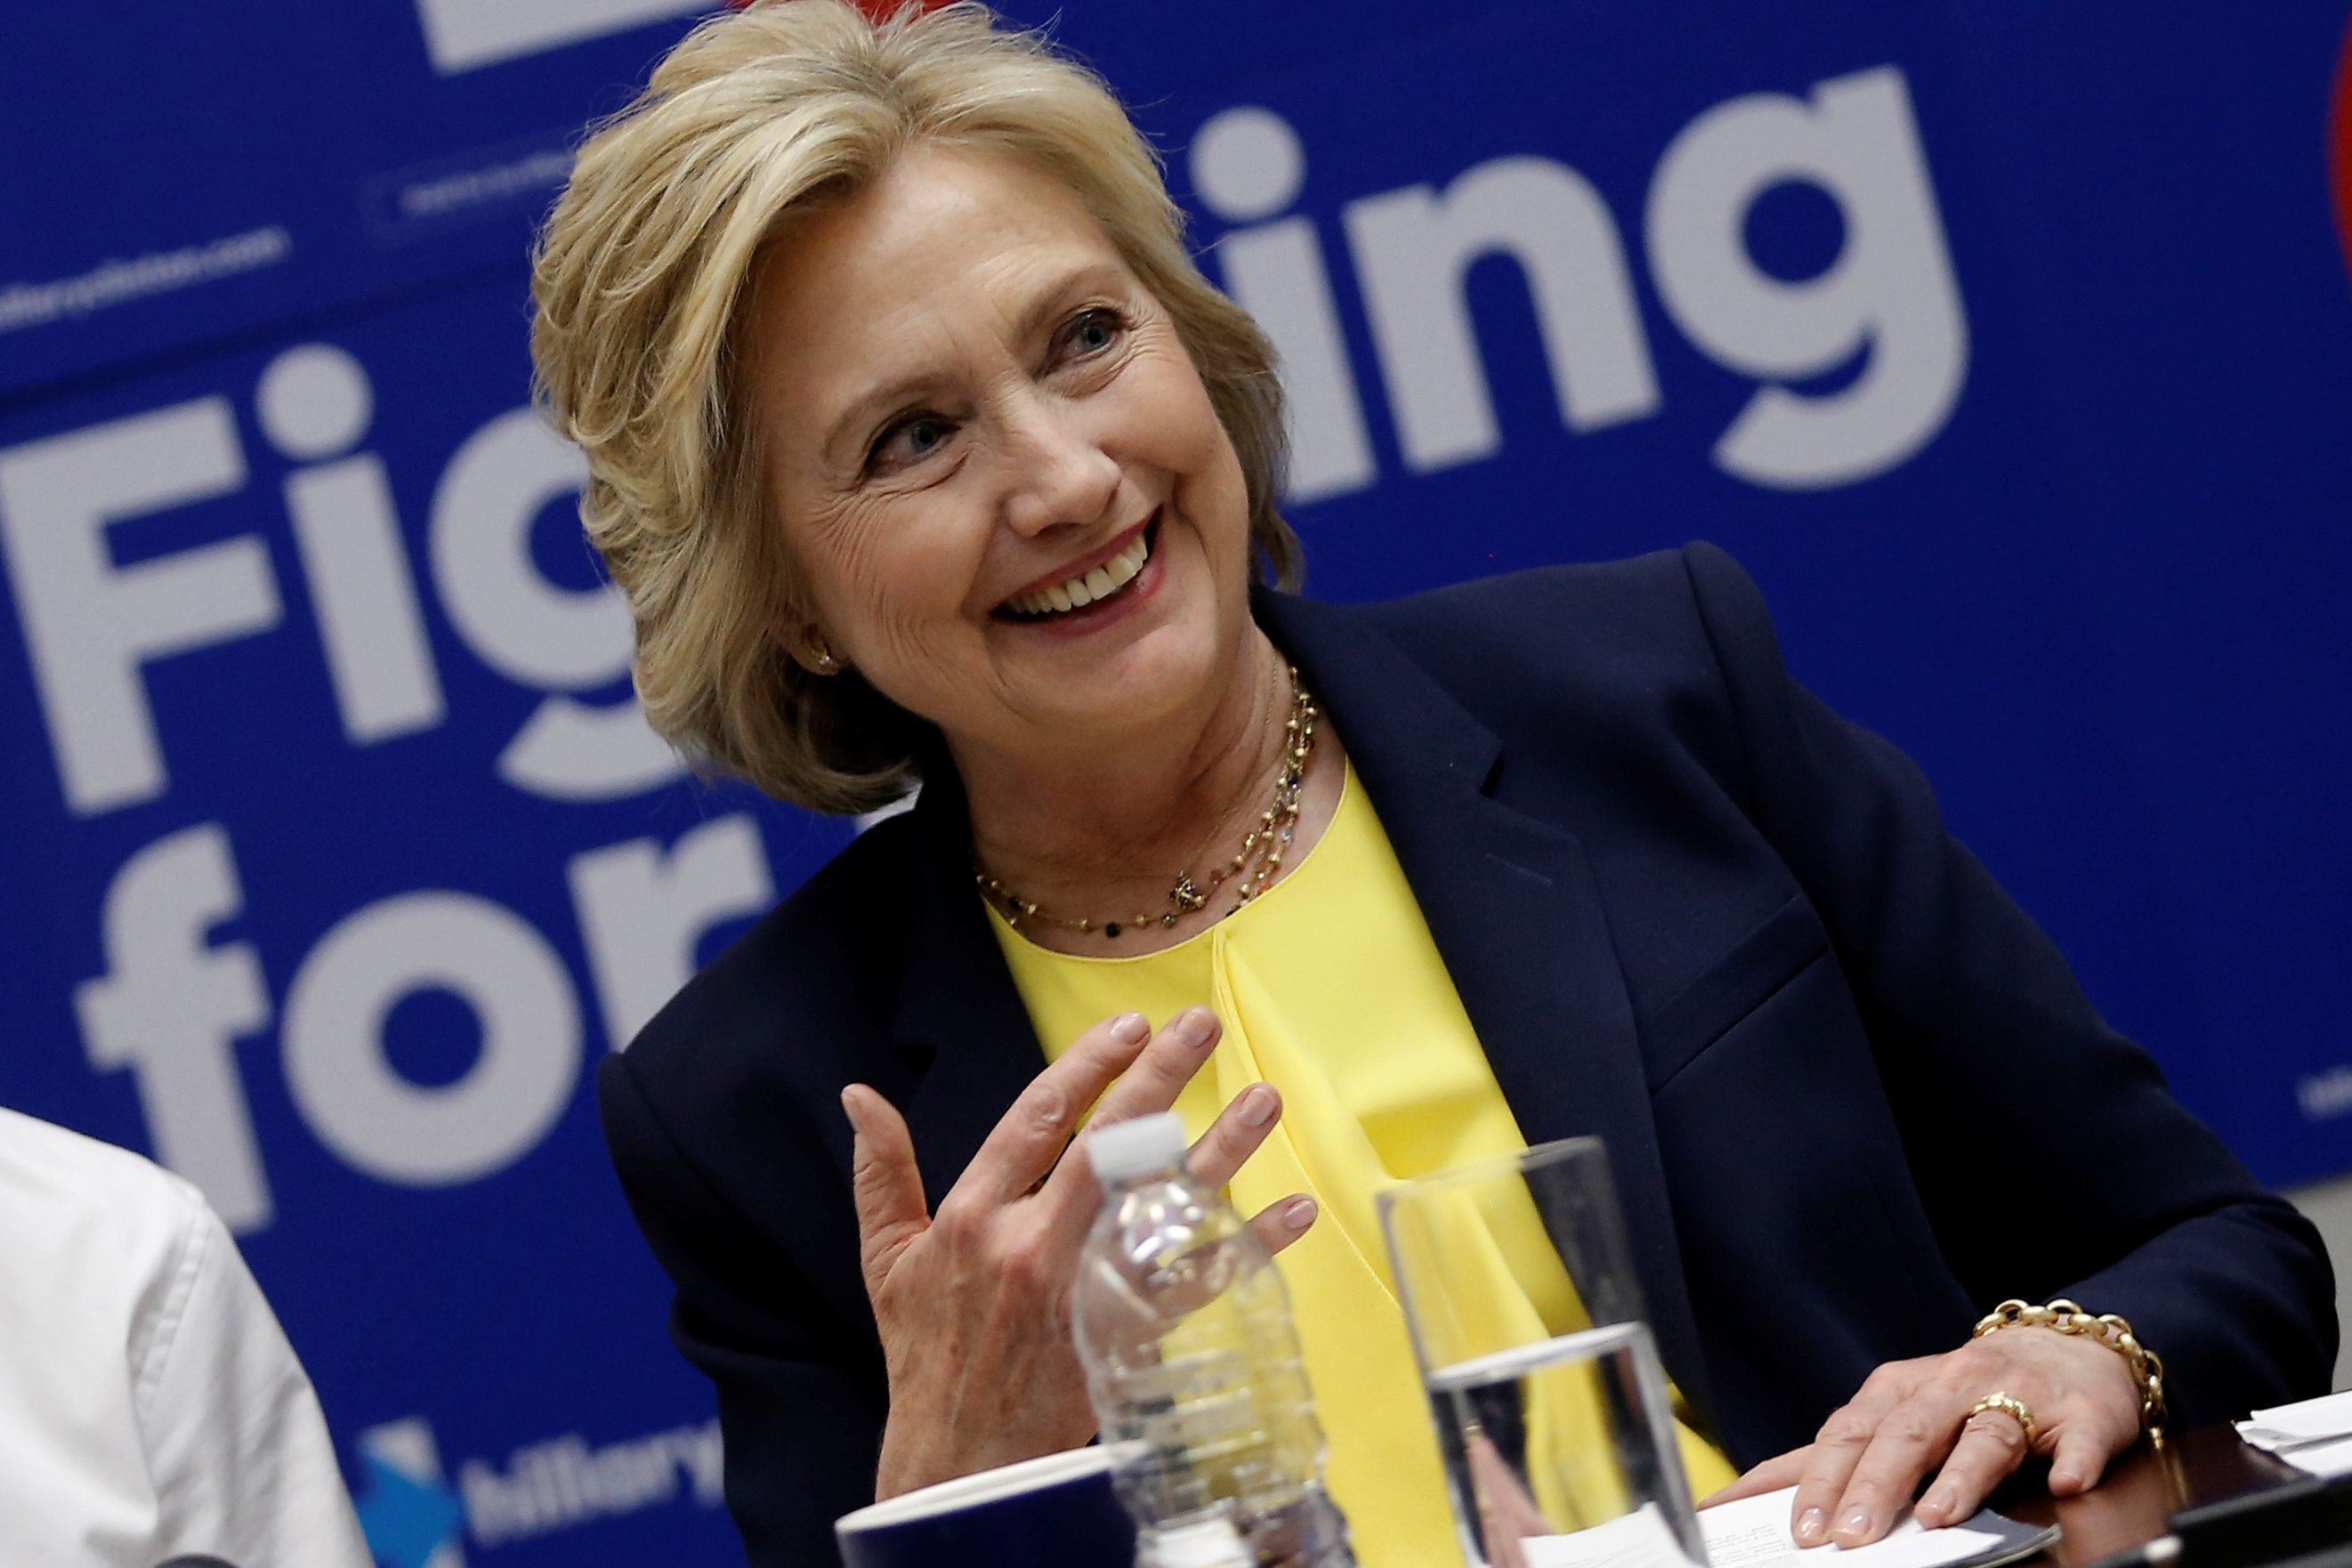 U.S. Democratic presidential candidate Hillary Clinton makes remarks during a meeting with a coalition of HIV/AIDS activists at her campaign headquarters in the Brooklyn borough of New York City, U.S., May 12, 2016.  REUTERS/Mike Segar